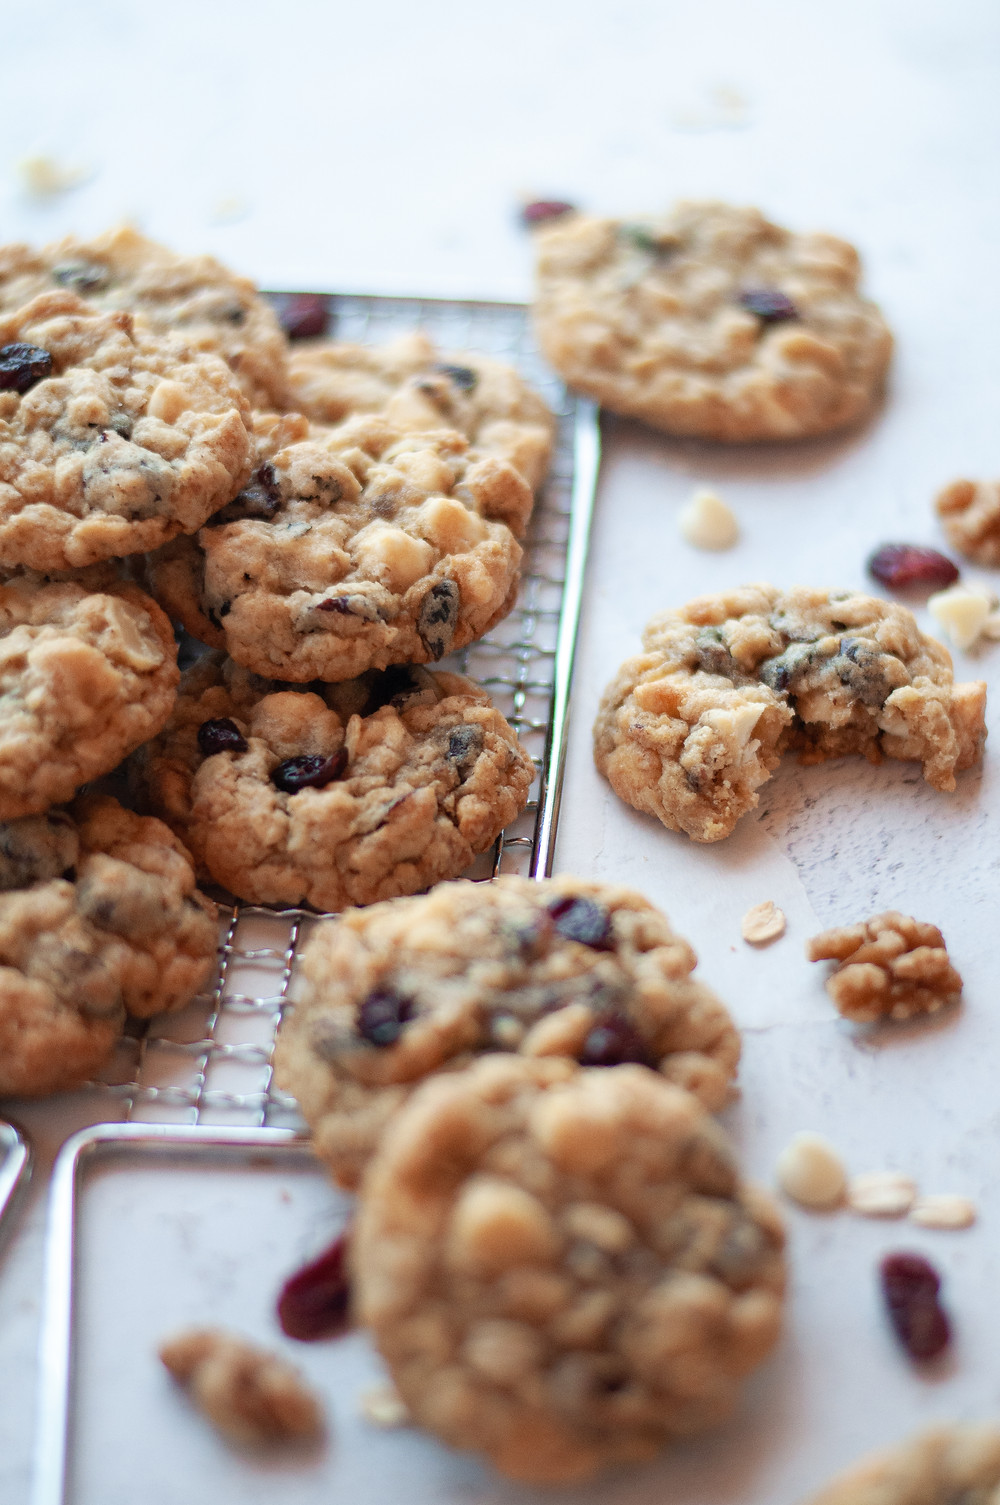 Stack of many cookies from this cranberry oatmeal cookie recipe